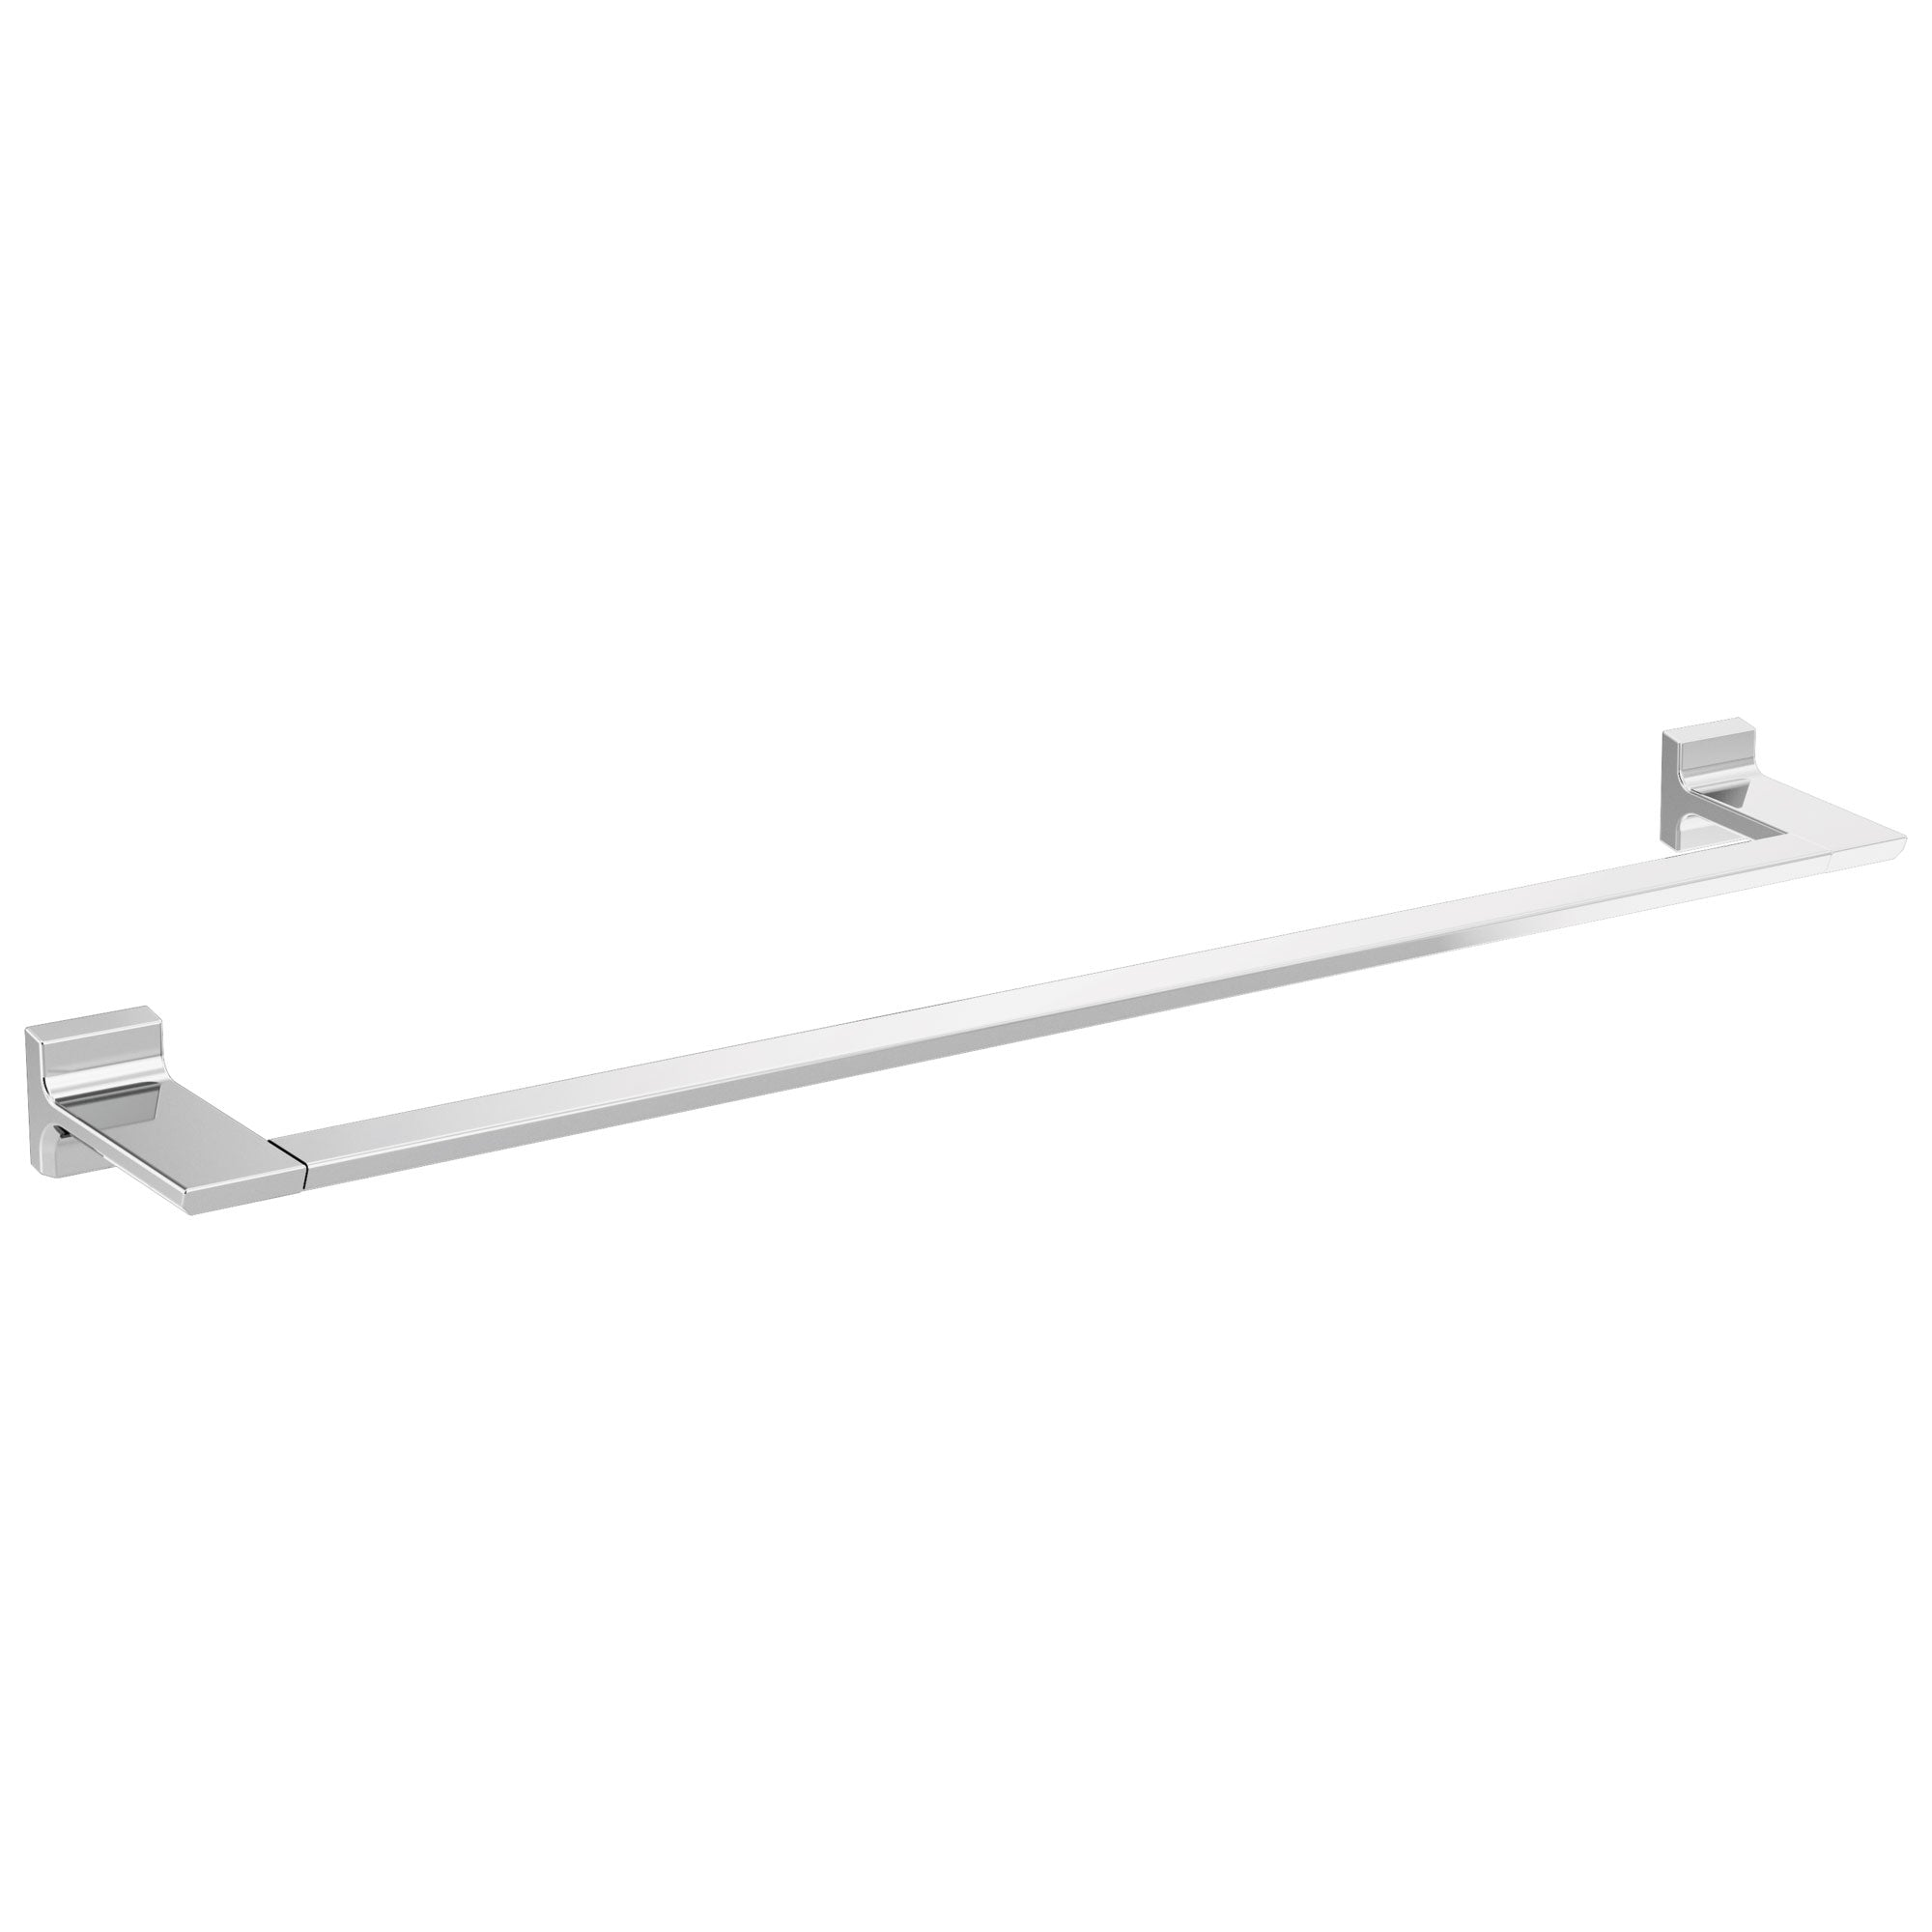 "Delta Pivotal Chrome Finish 30"" Single Towel Bar D79930"